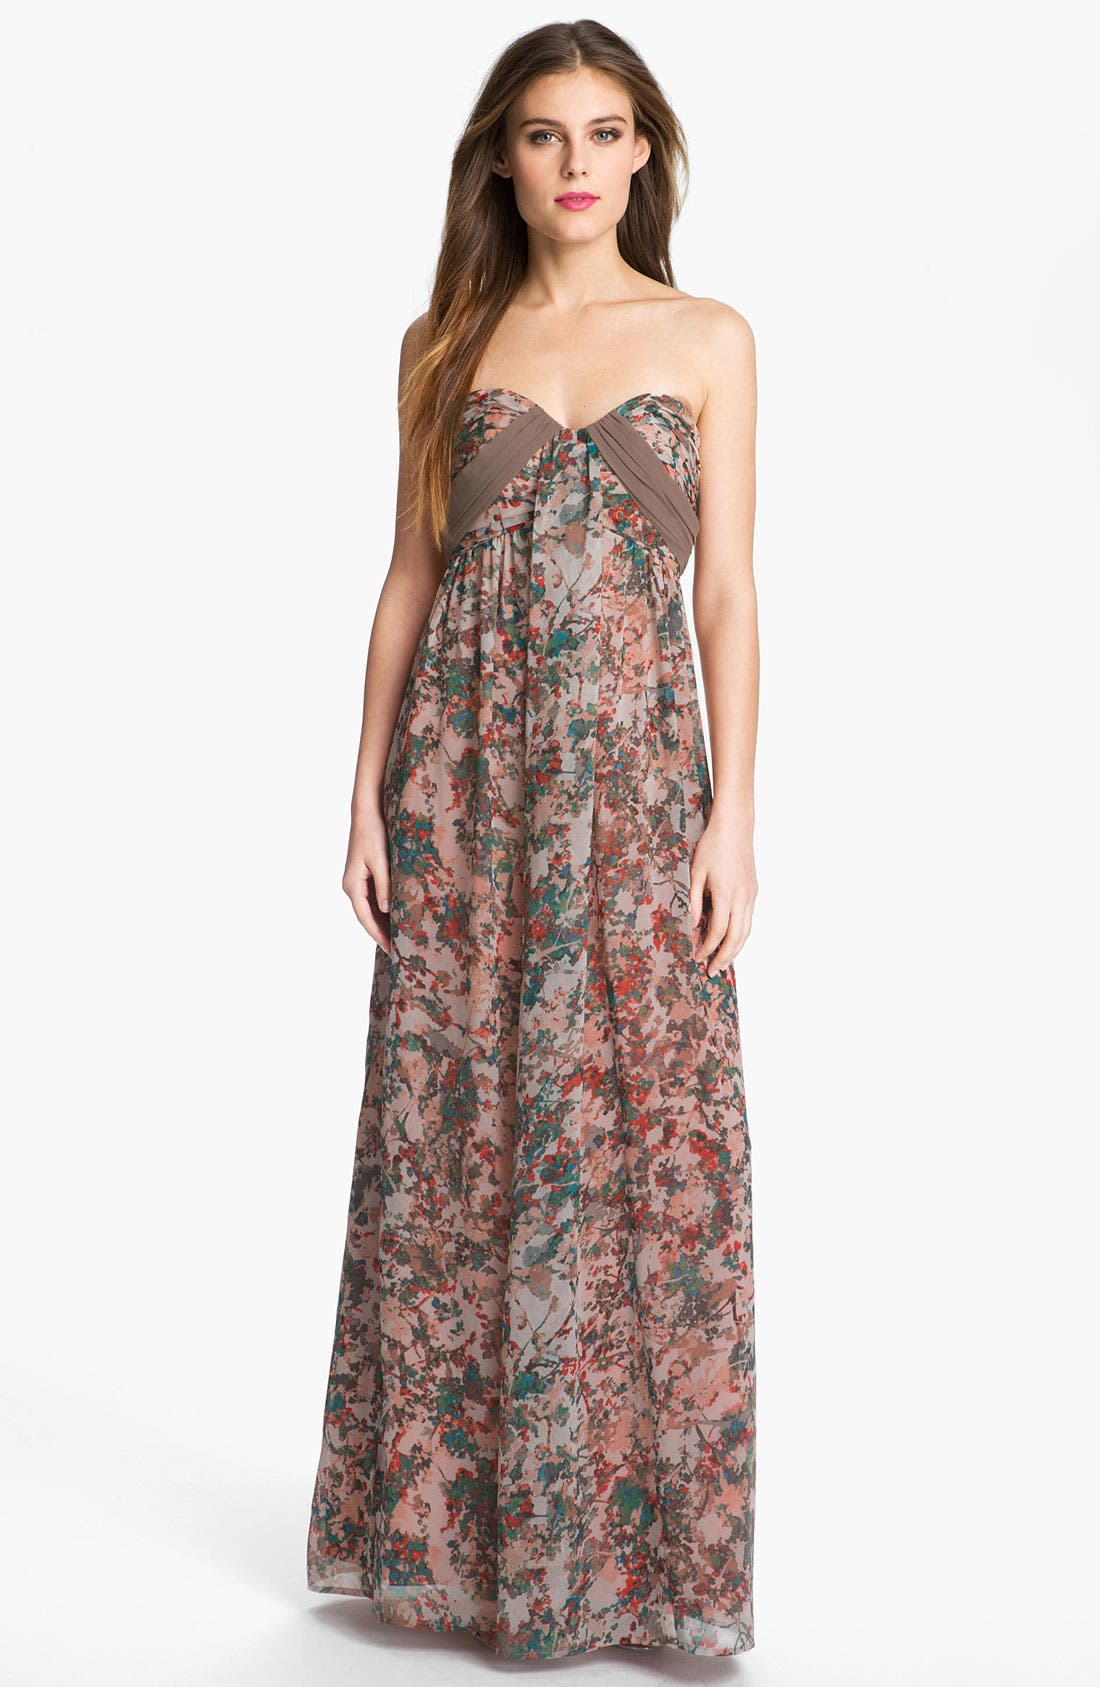 Main Image - Jessica Simpson 'Misty Rose' Print Maxi Dress